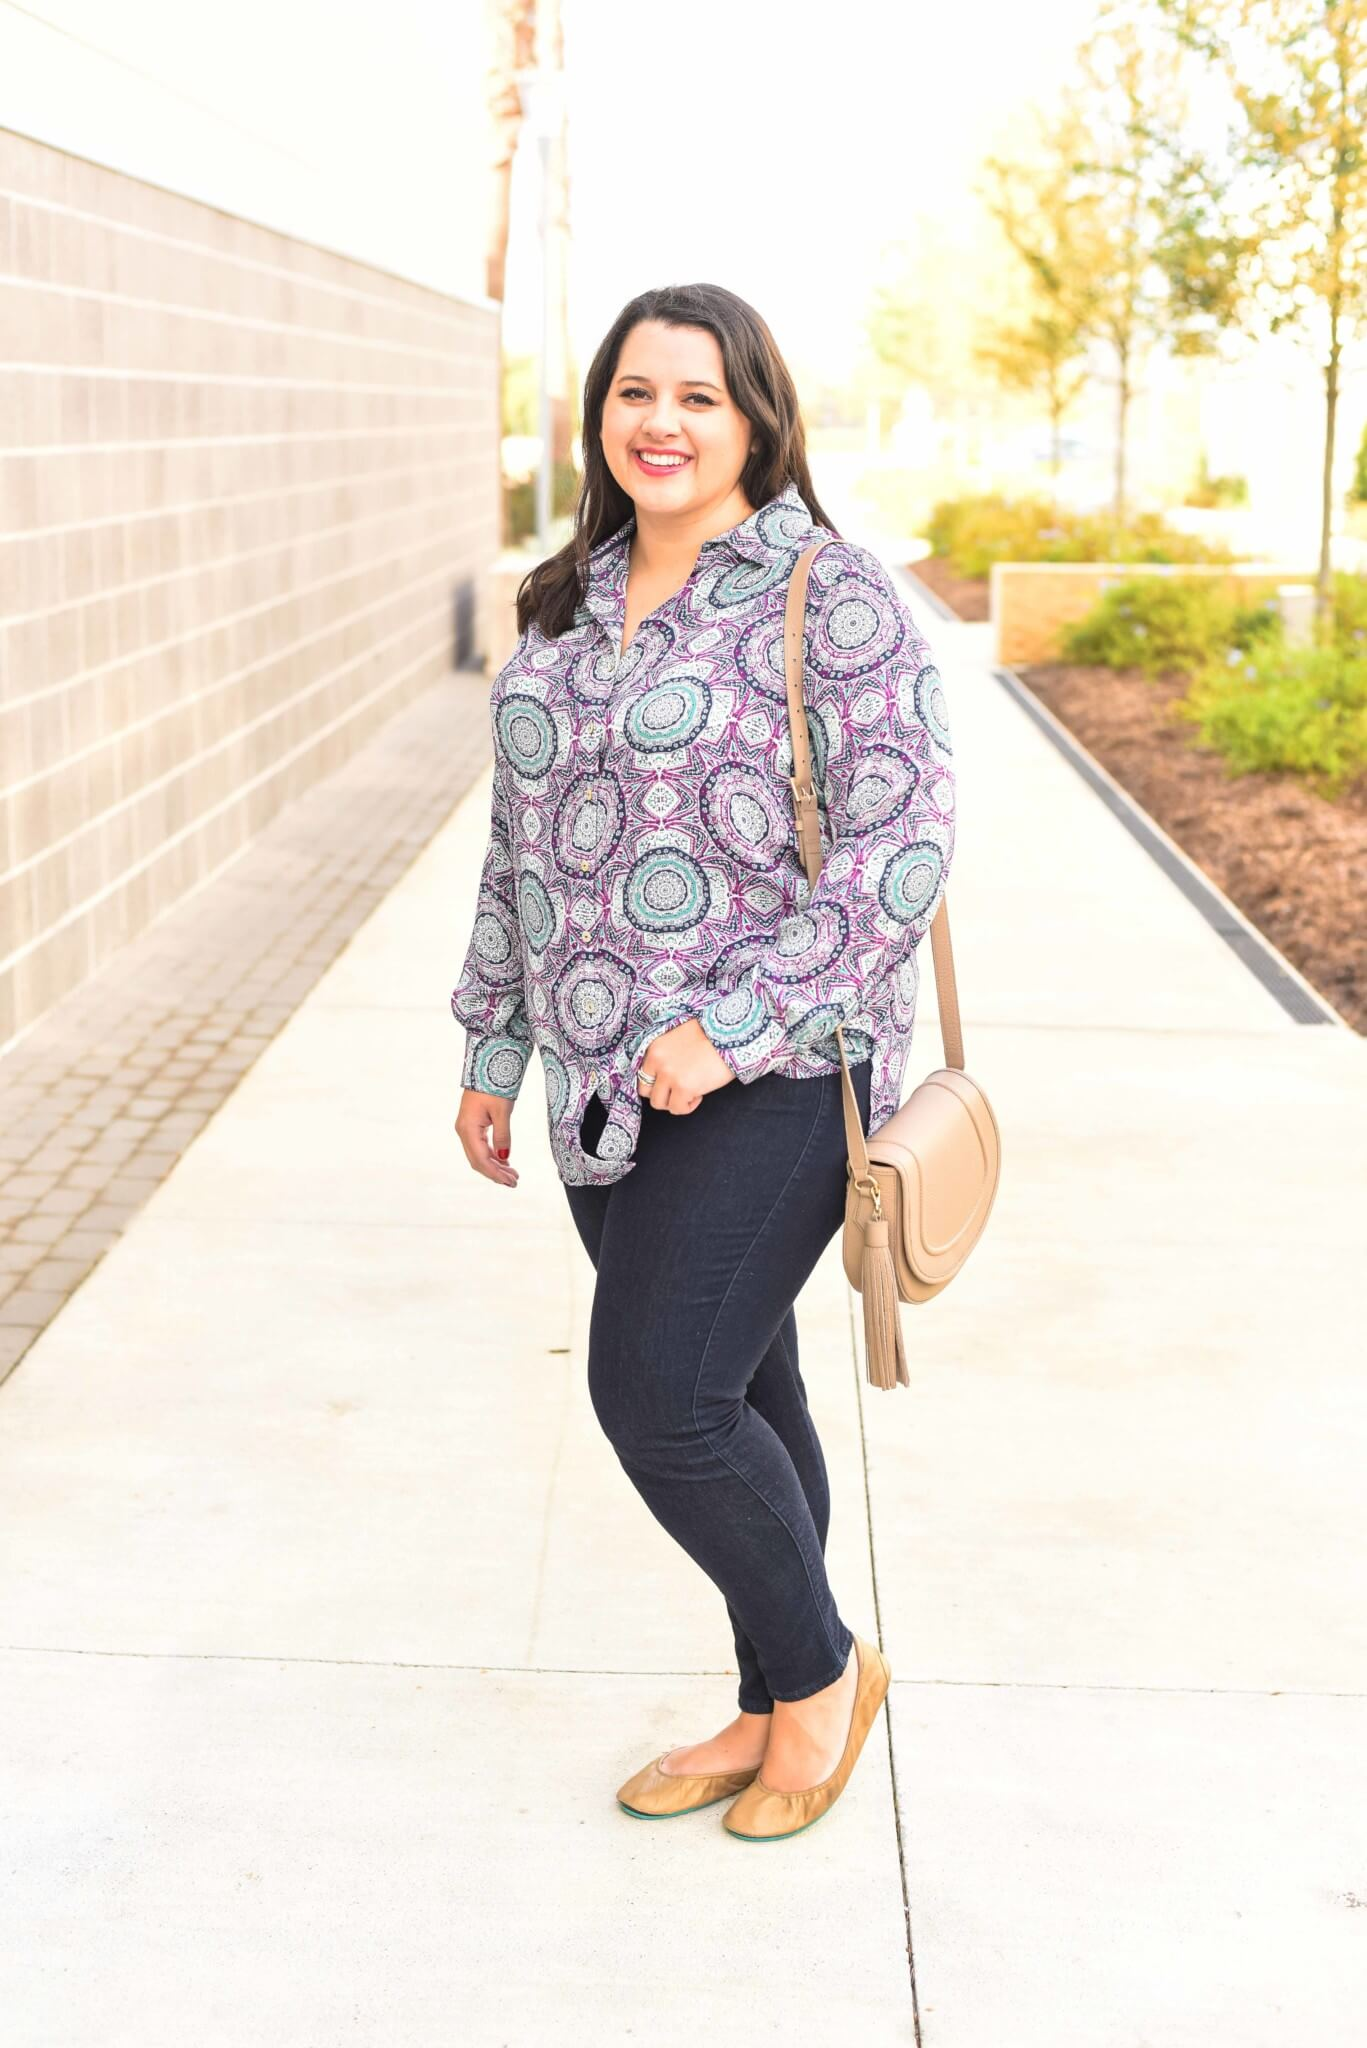 How to style a colorful top for work and play. This colorful tunic can easily go from work to a weekend full of activities. I paired this top with a pair of jeans which can be worn for a casual day at work.